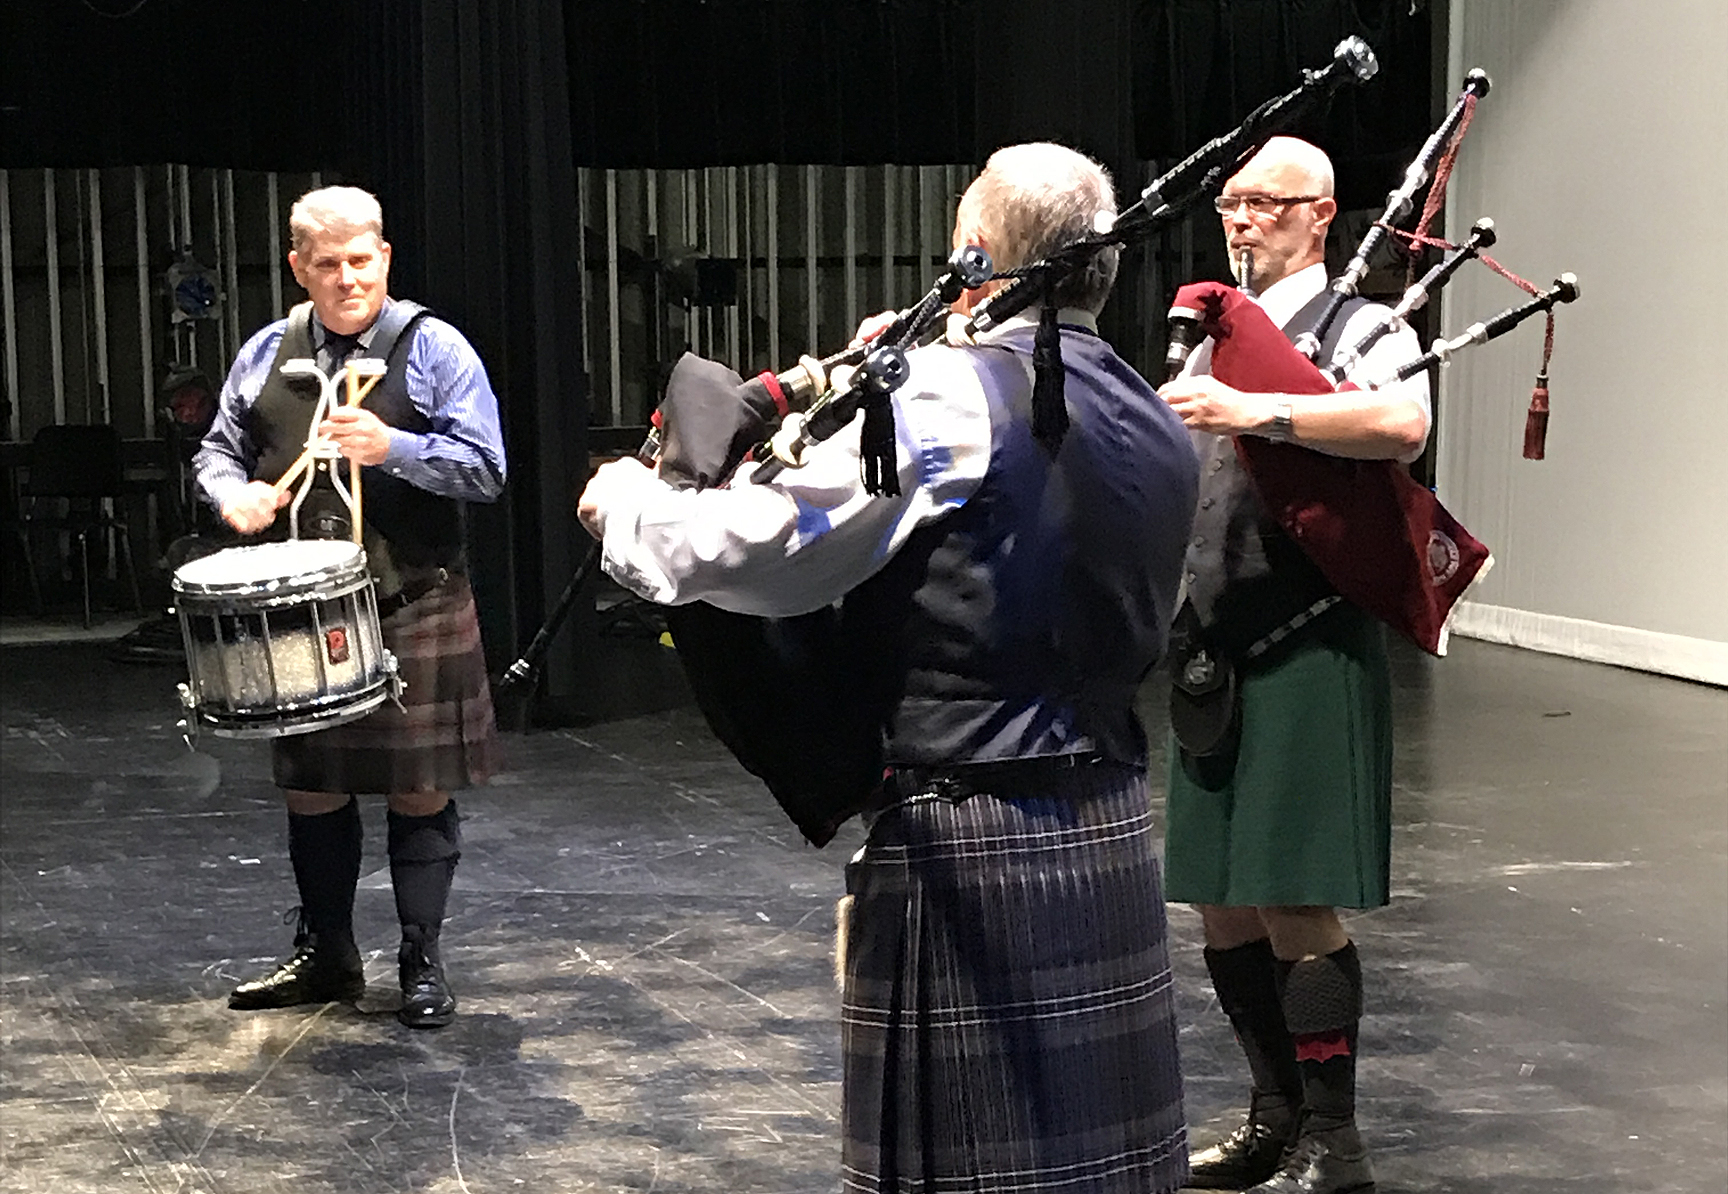 Balmoral School of Piping & Drumming's Pittsburgh Summer School, with Terry Tully, Robert Mathieson and Gordon Bell.